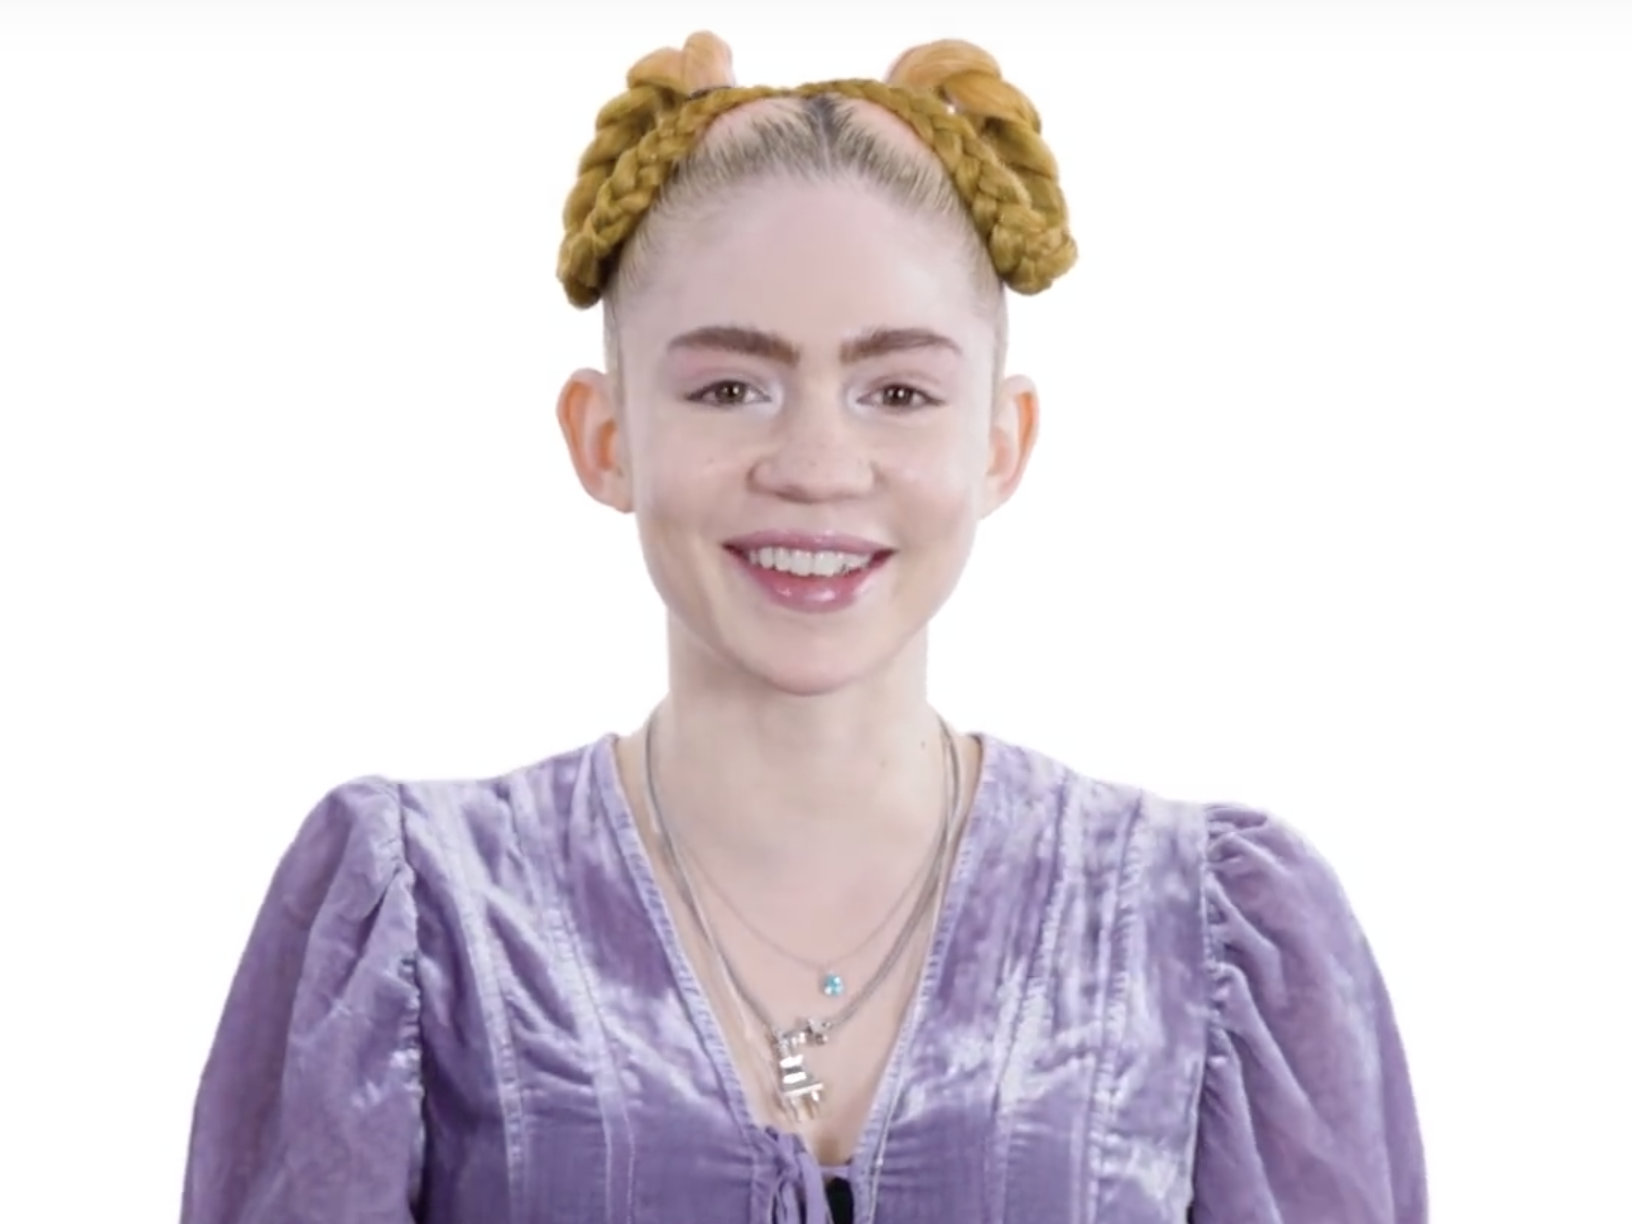 Grimes says she gave up vegan diet due to pregnancy cravings for cow's milk